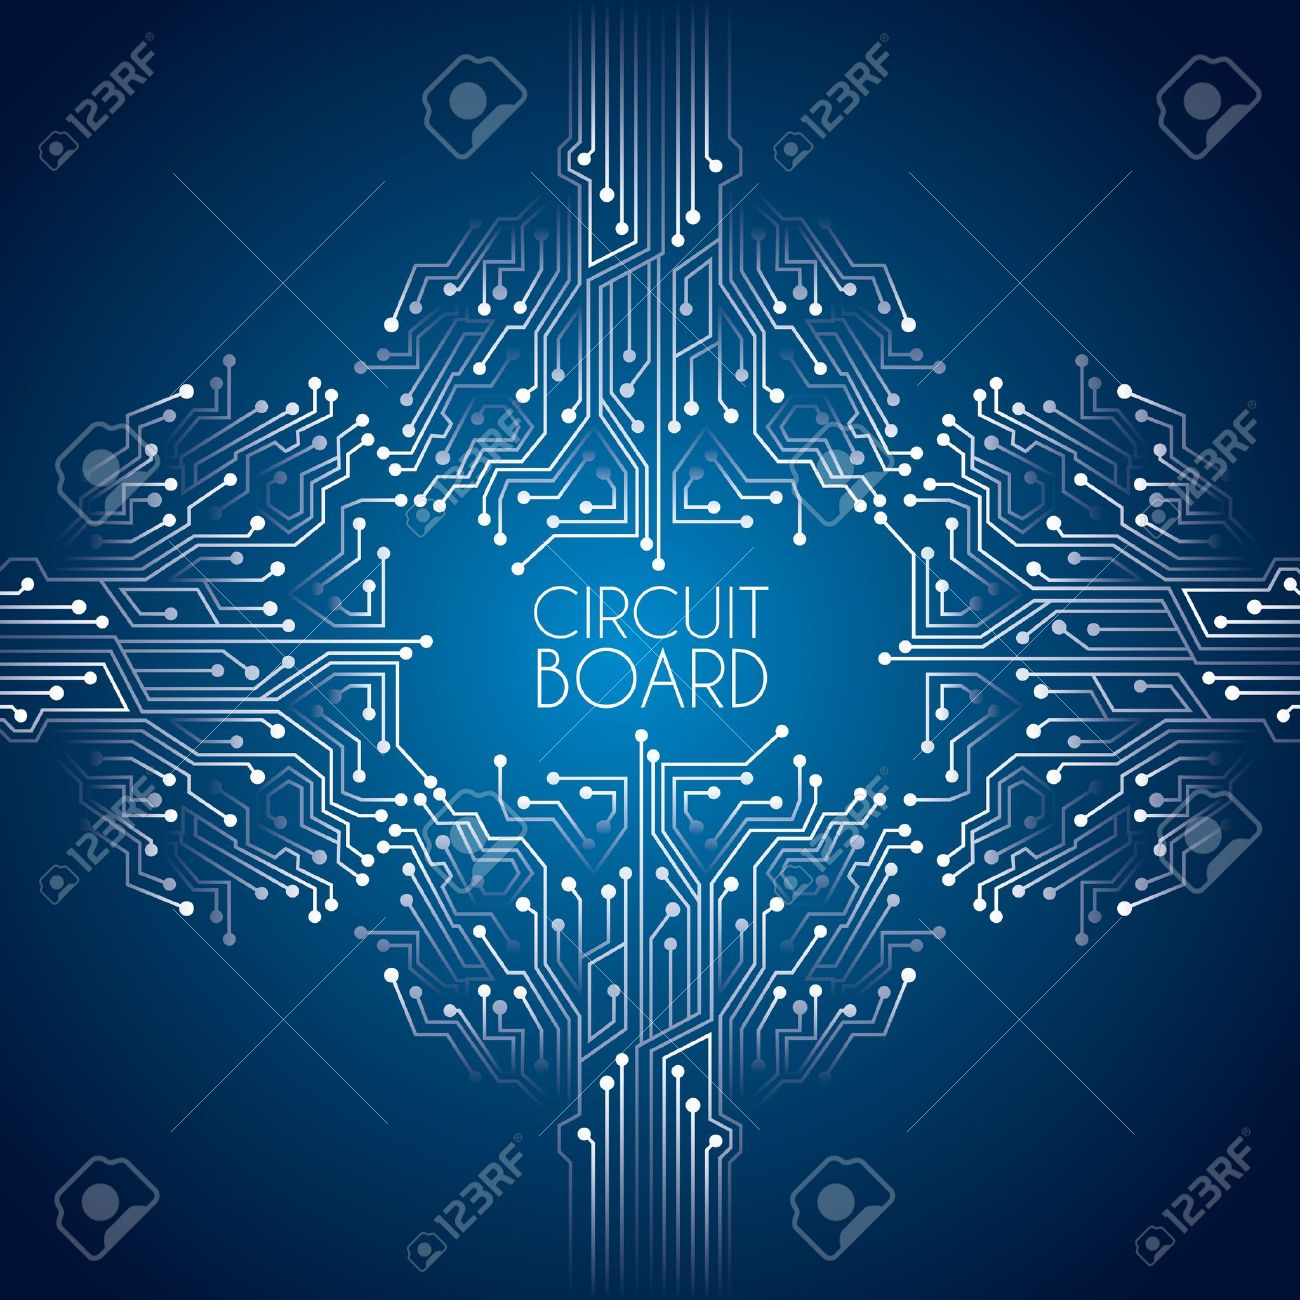 Circuit Board Over Blue Background Vector Illustration Royalty Free Design Green Imagens 19772957